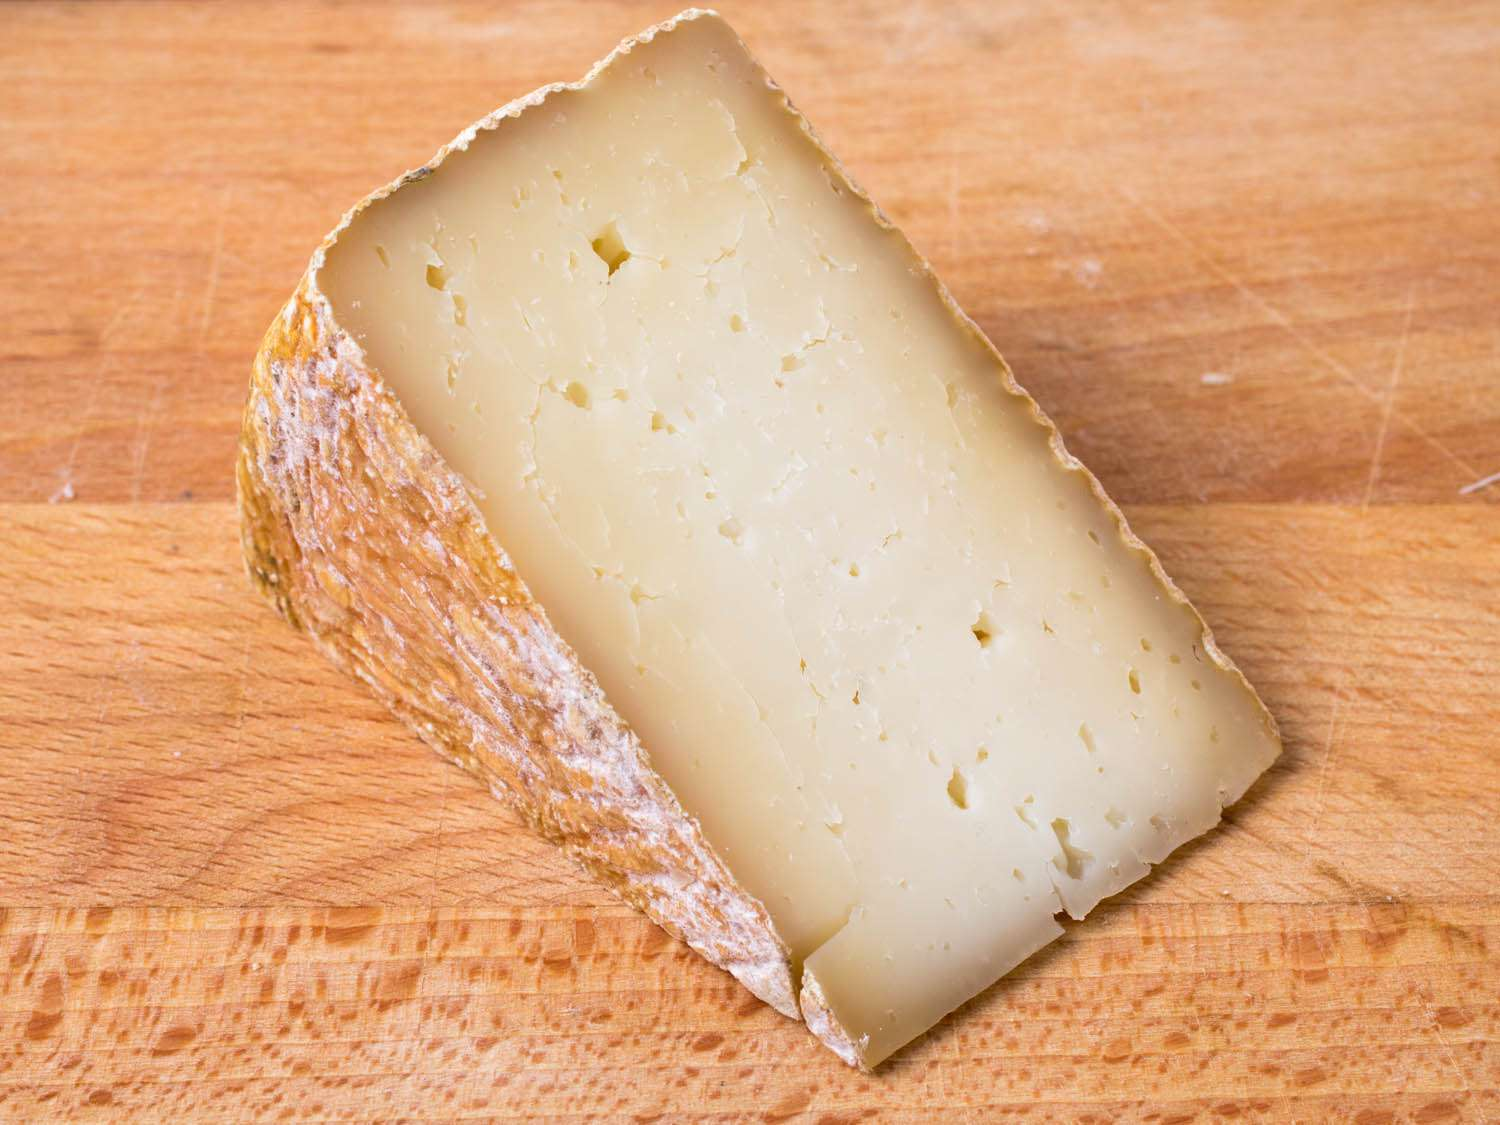 20141105-thanksgiving-cheese-manchester-vicky-wasik-2.jpg